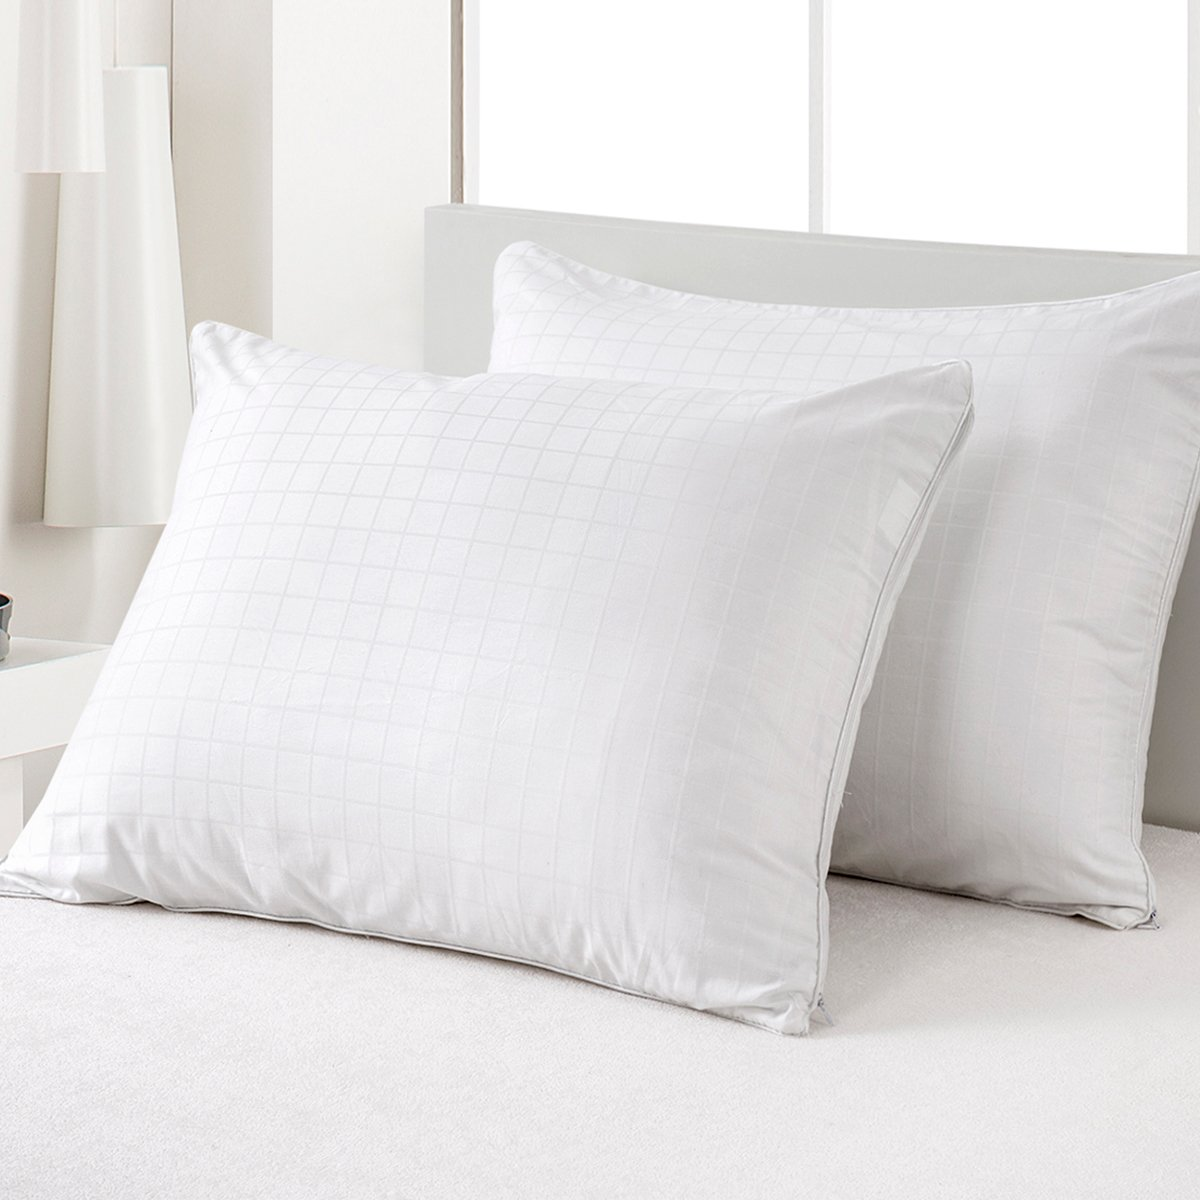 MZXcuin 2-Pack 100% Cotton Pillow Protectors Zipper Pillowcases, Premium Allergy Dust Mite Bed Bug Control – Anti-Microbial 300 Thread Count Pillow Covers( Standard 20'' x 26'')